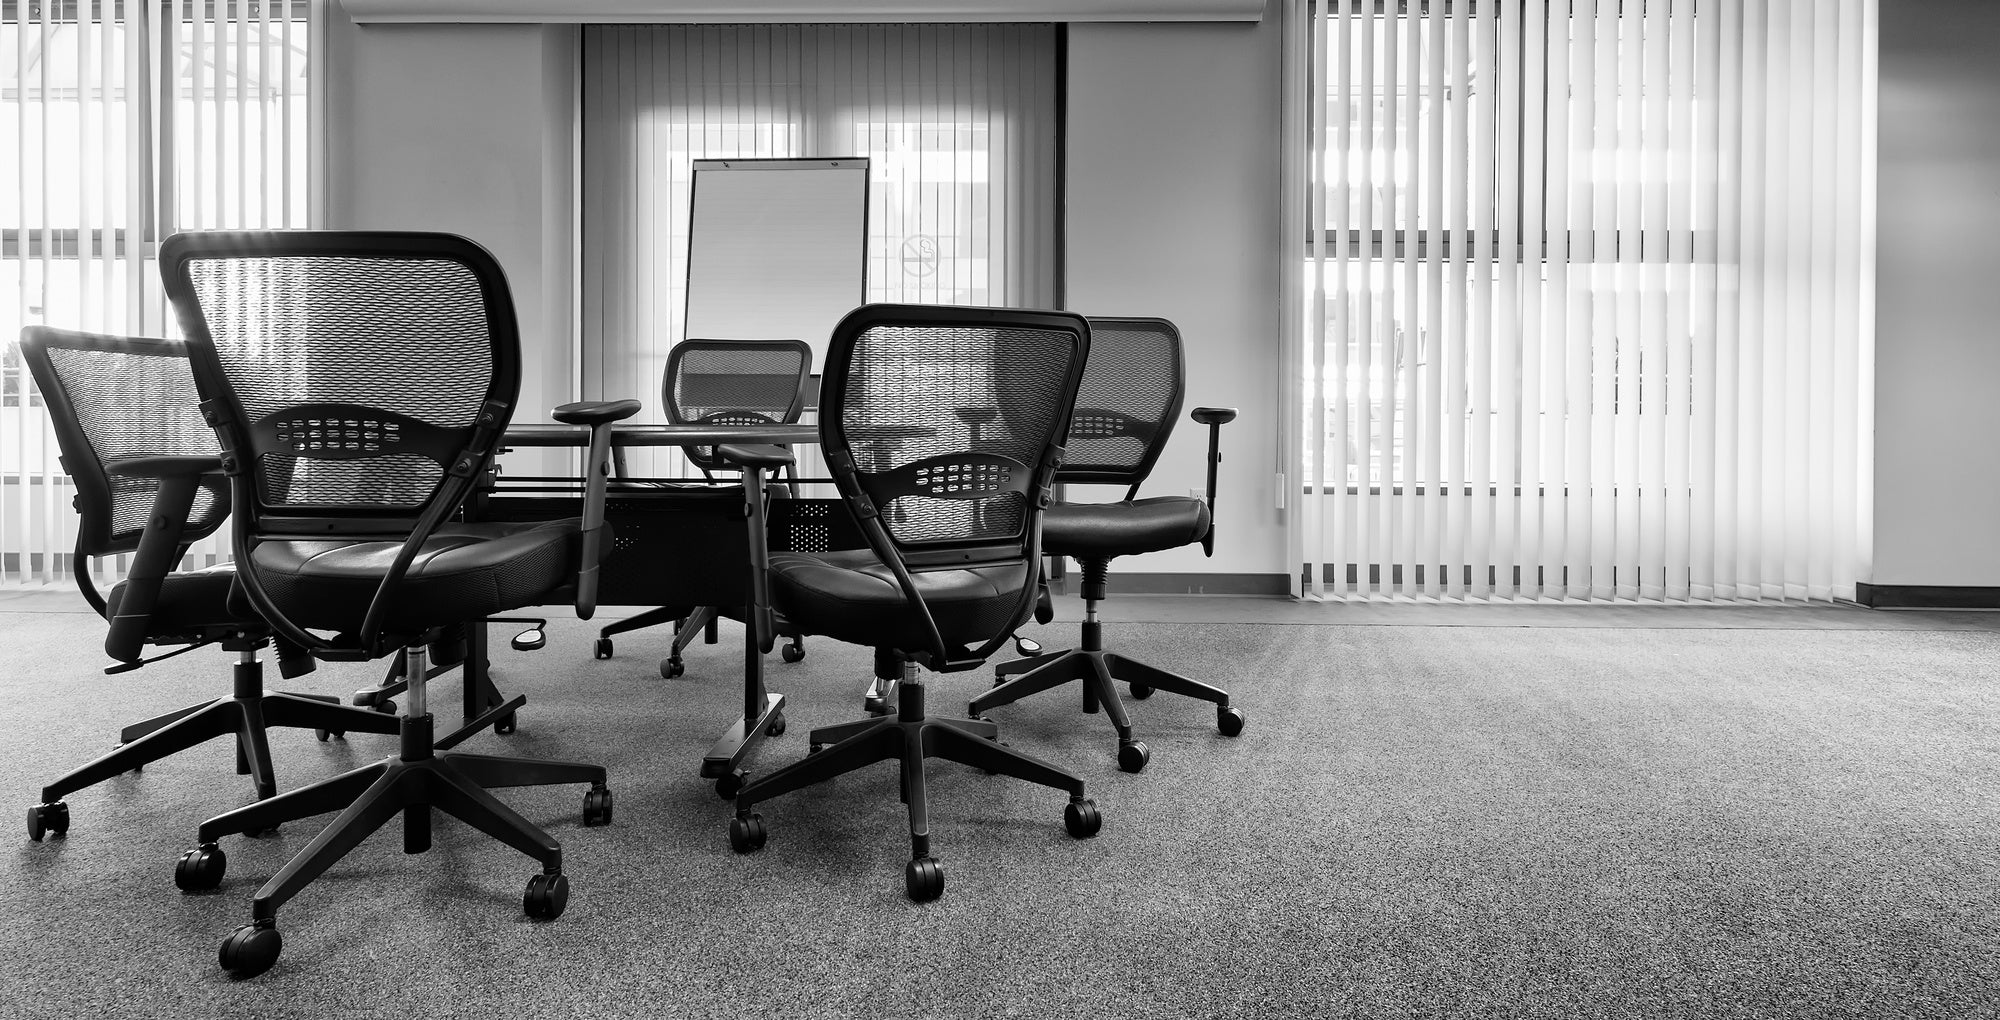 The Best Office Chairs to Improve Your Posture